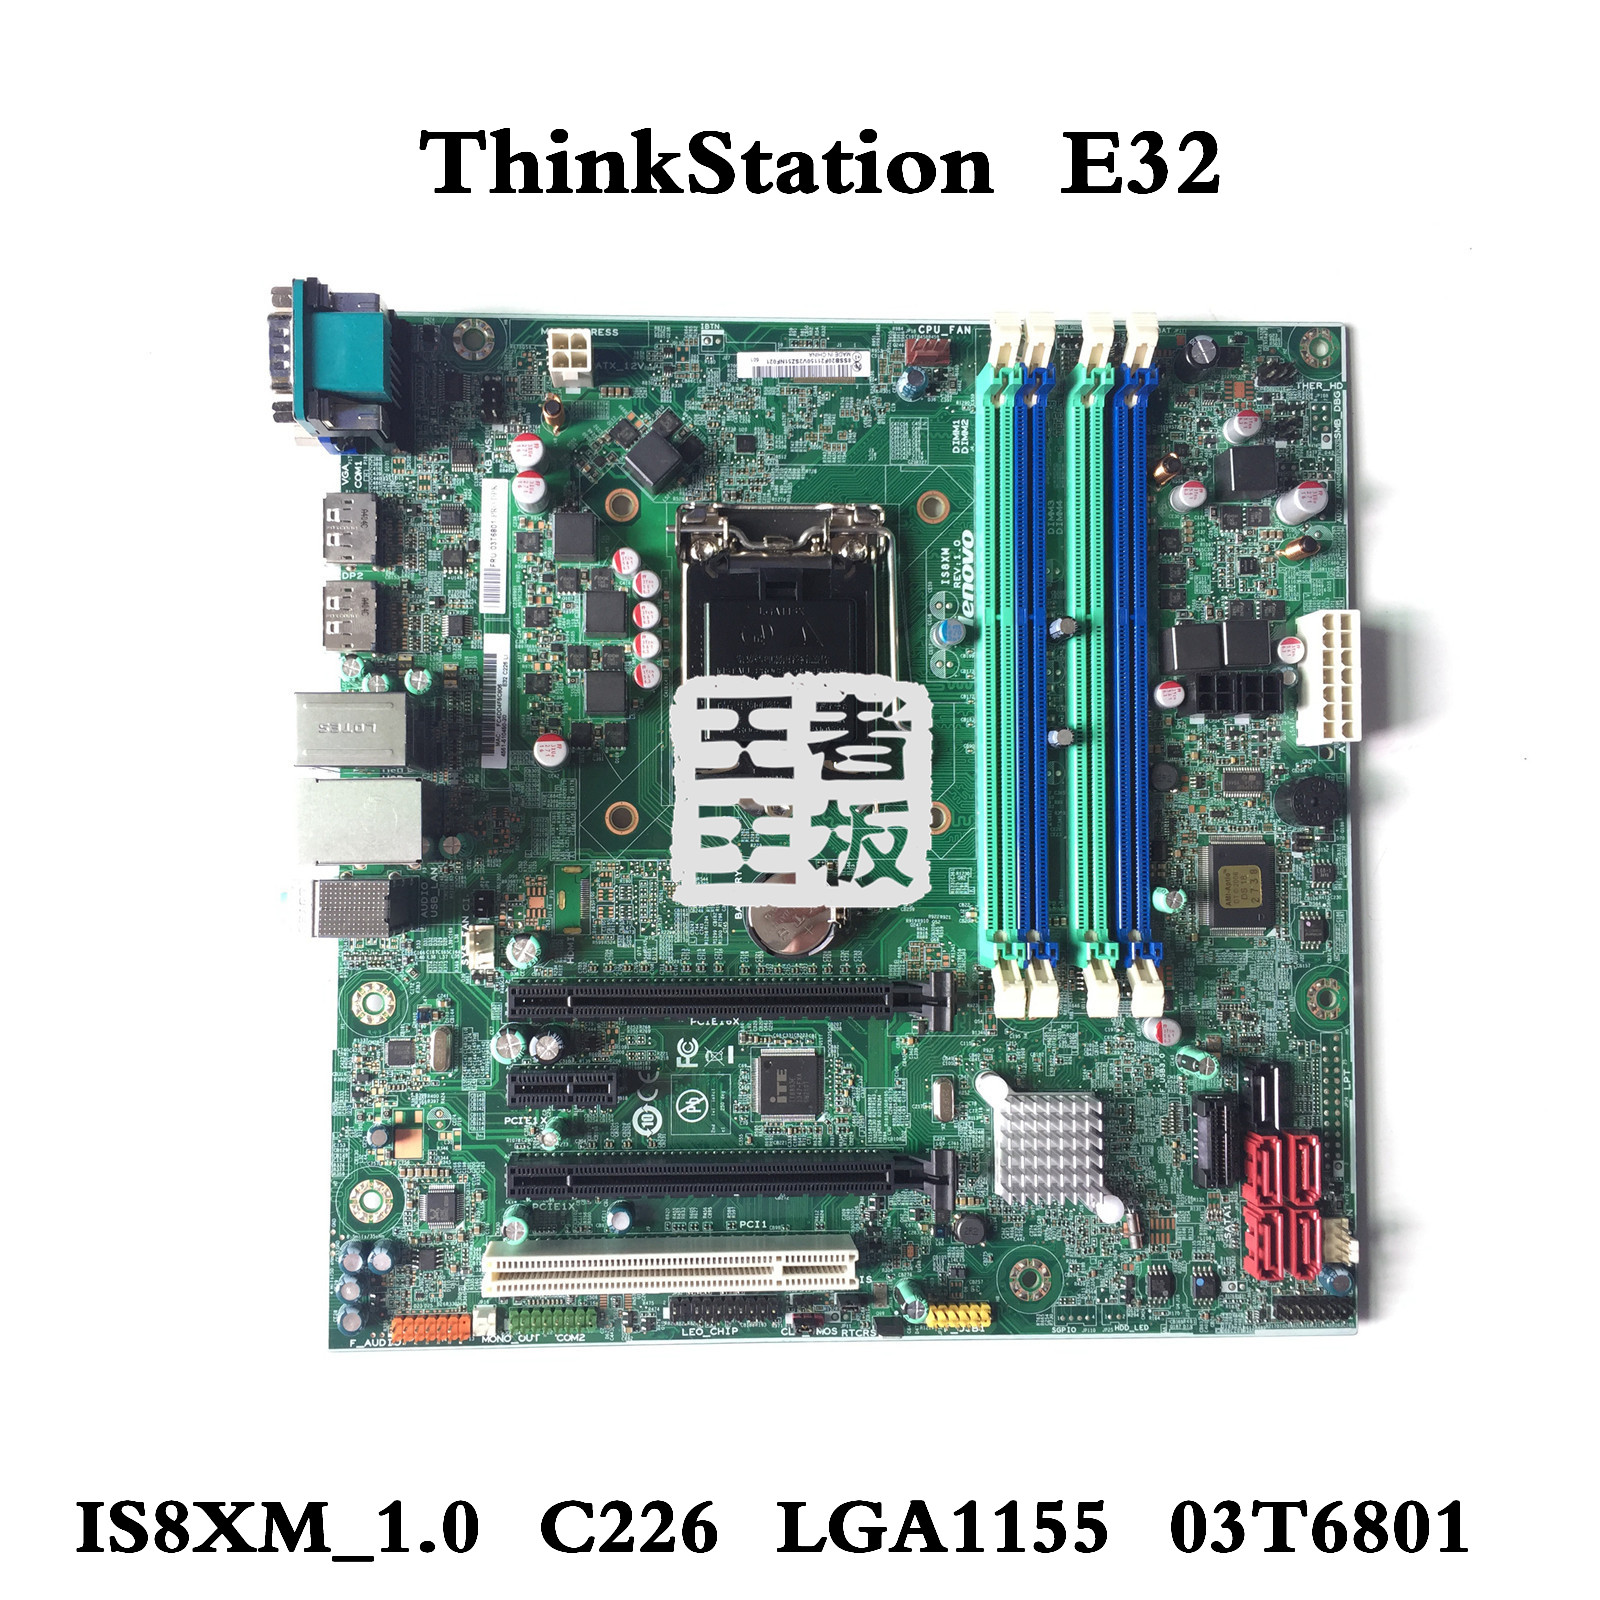 03T6801 00FC820 联想ThinkStation IS8XM E32 C226芯片 P300 原装